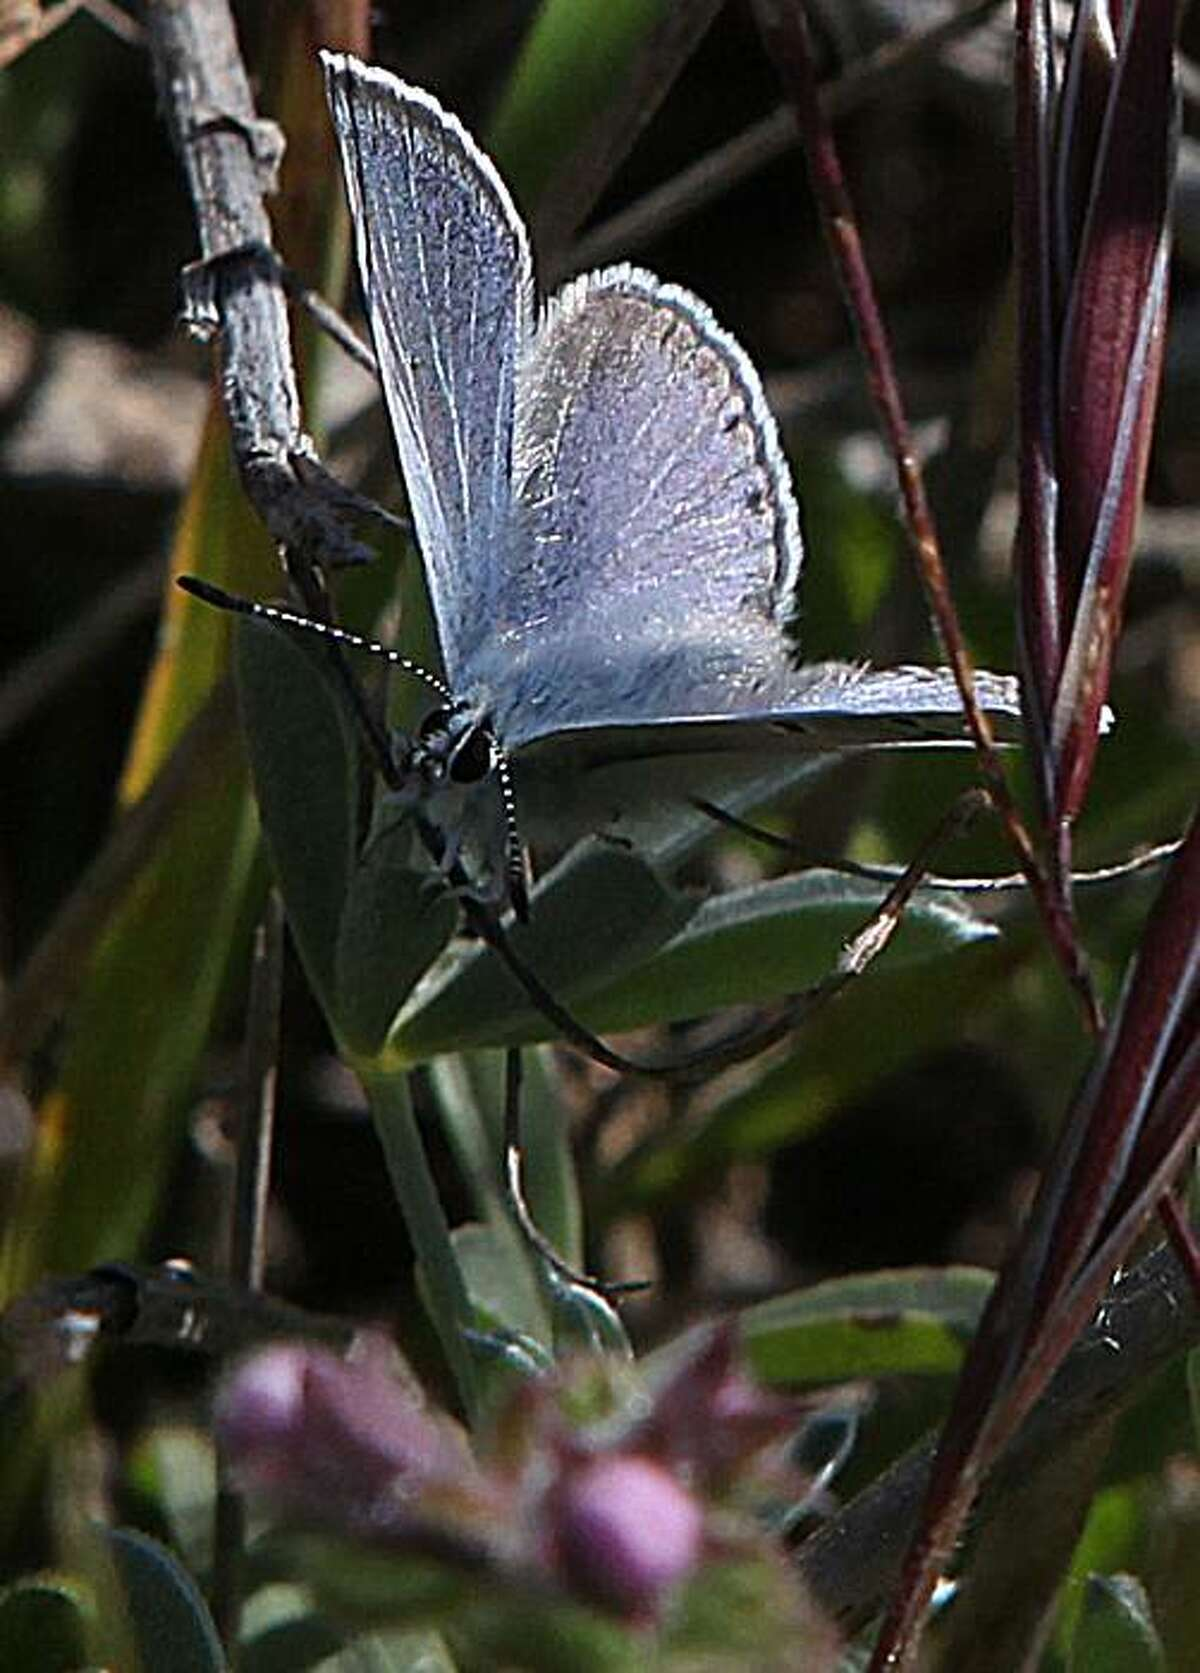 A male mission blue butterfly resting on a leaf in Twin Peaks in San Francisco, Calif., on Thursday, May 6, 2010. The endangered species is from the Lycaenidae family and it's wingspan is 1 to 1.5 inch